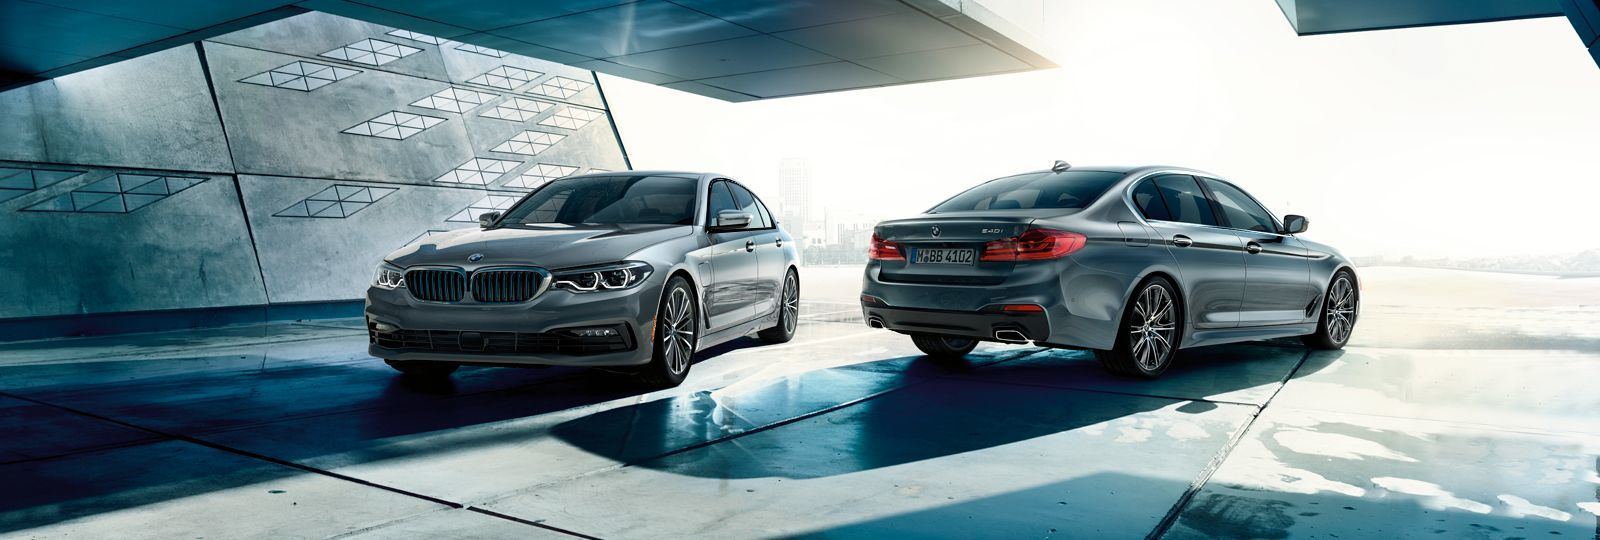 2017 BMW 5 Series Financing near Flossmoor, IL